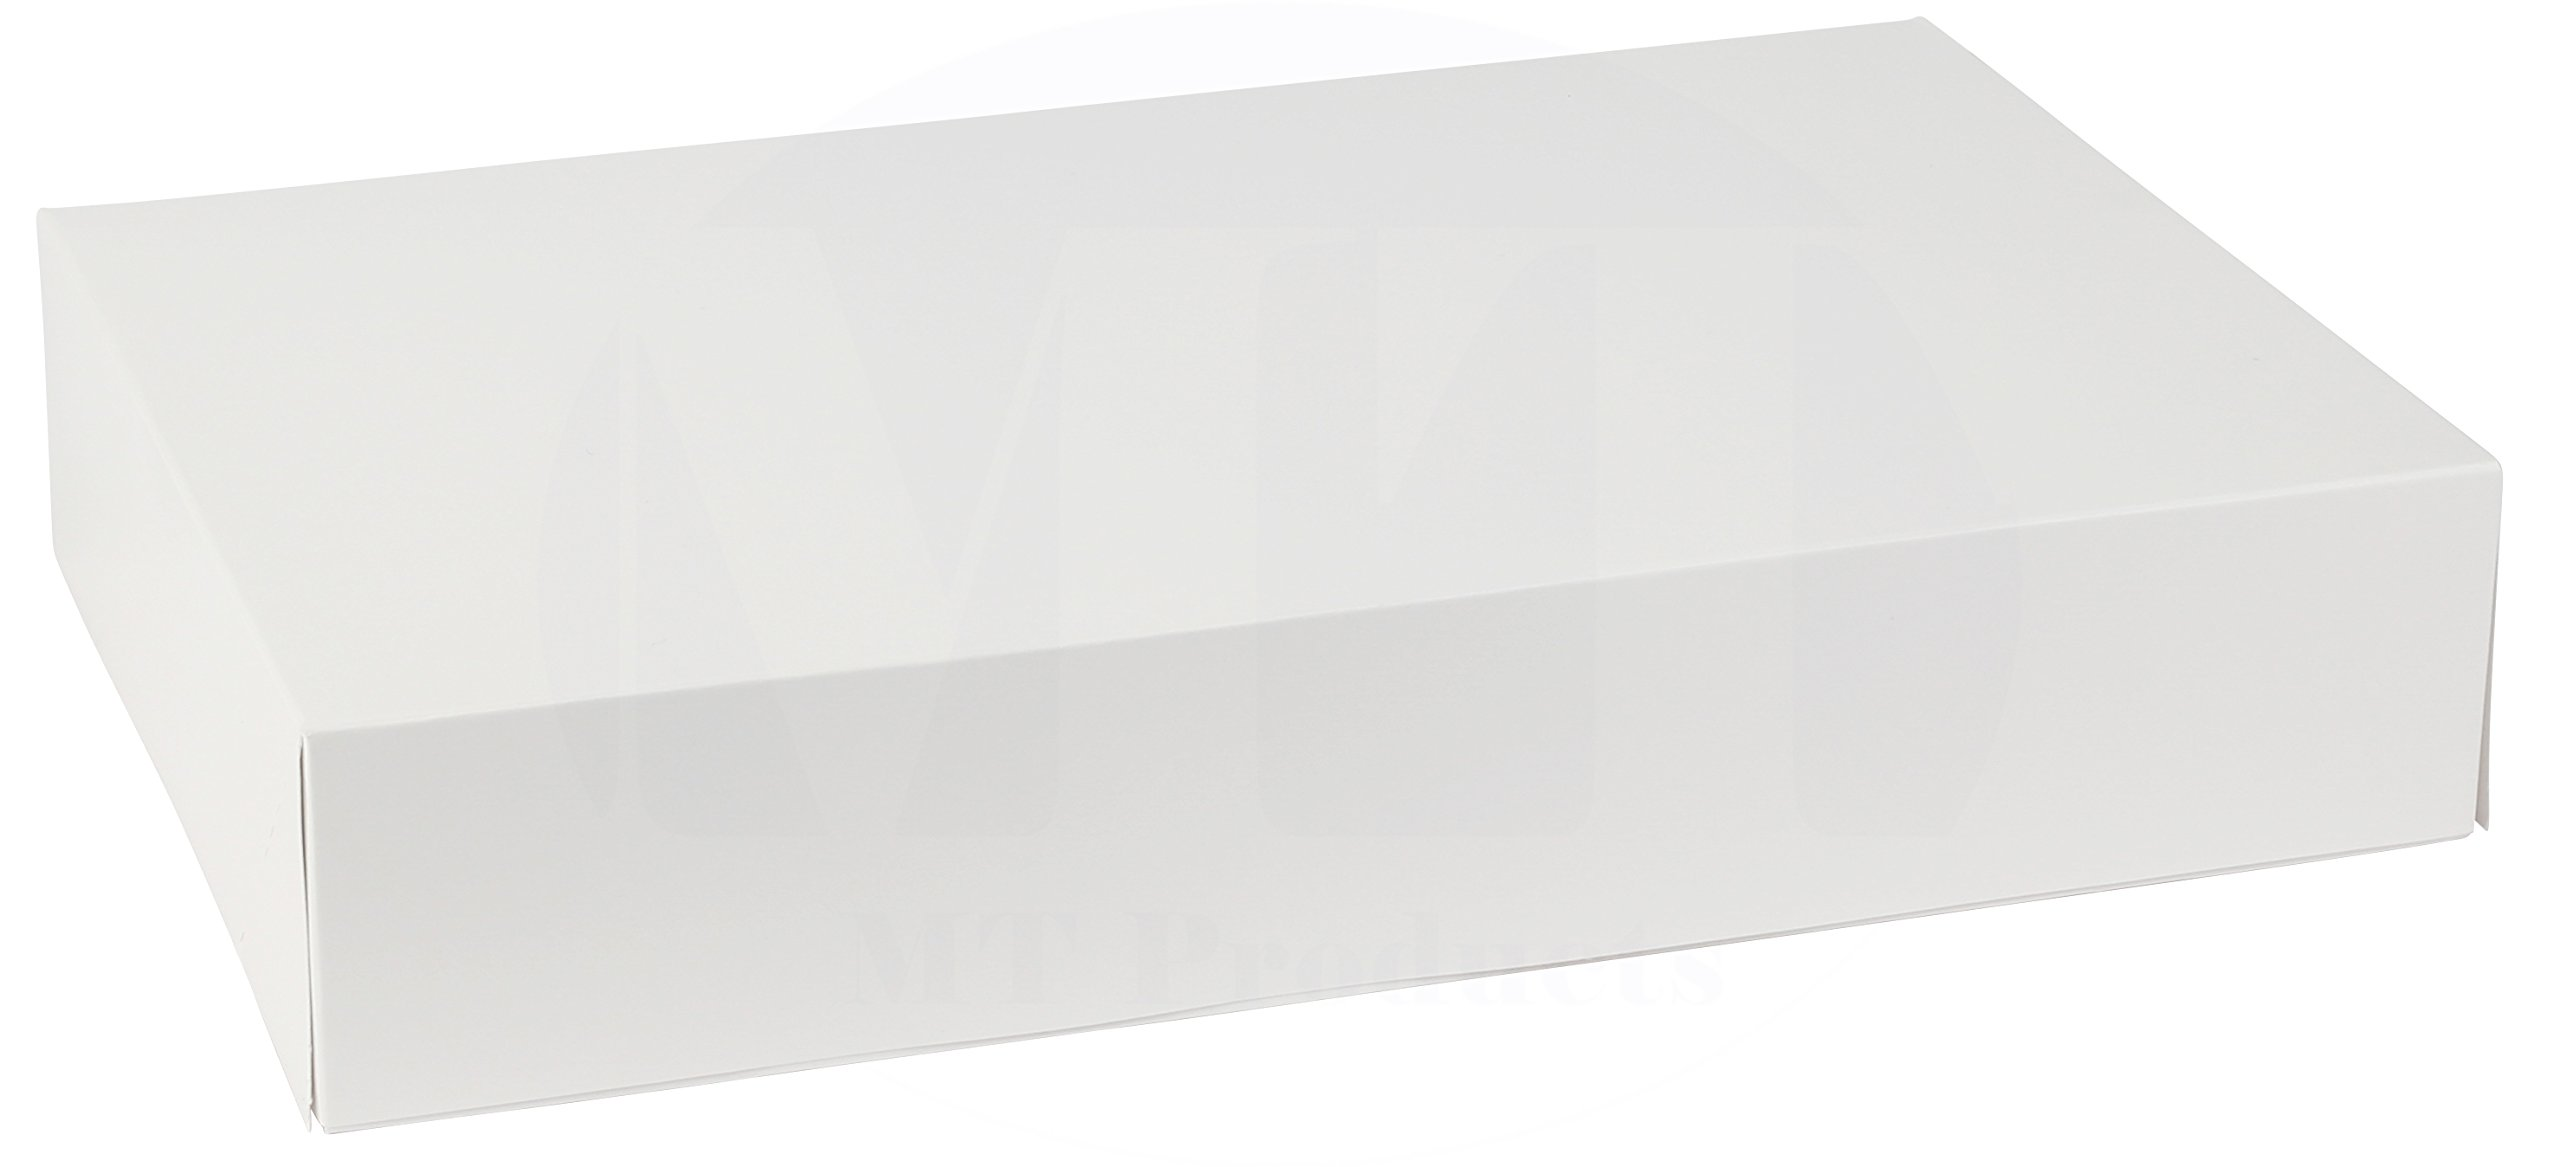 12'' Length x 8'' Width x 2.25'' Height White Kraft Paperboard Auto-Popup 1-Piece Donut Bakery Box by MT Products (Pack of 15)